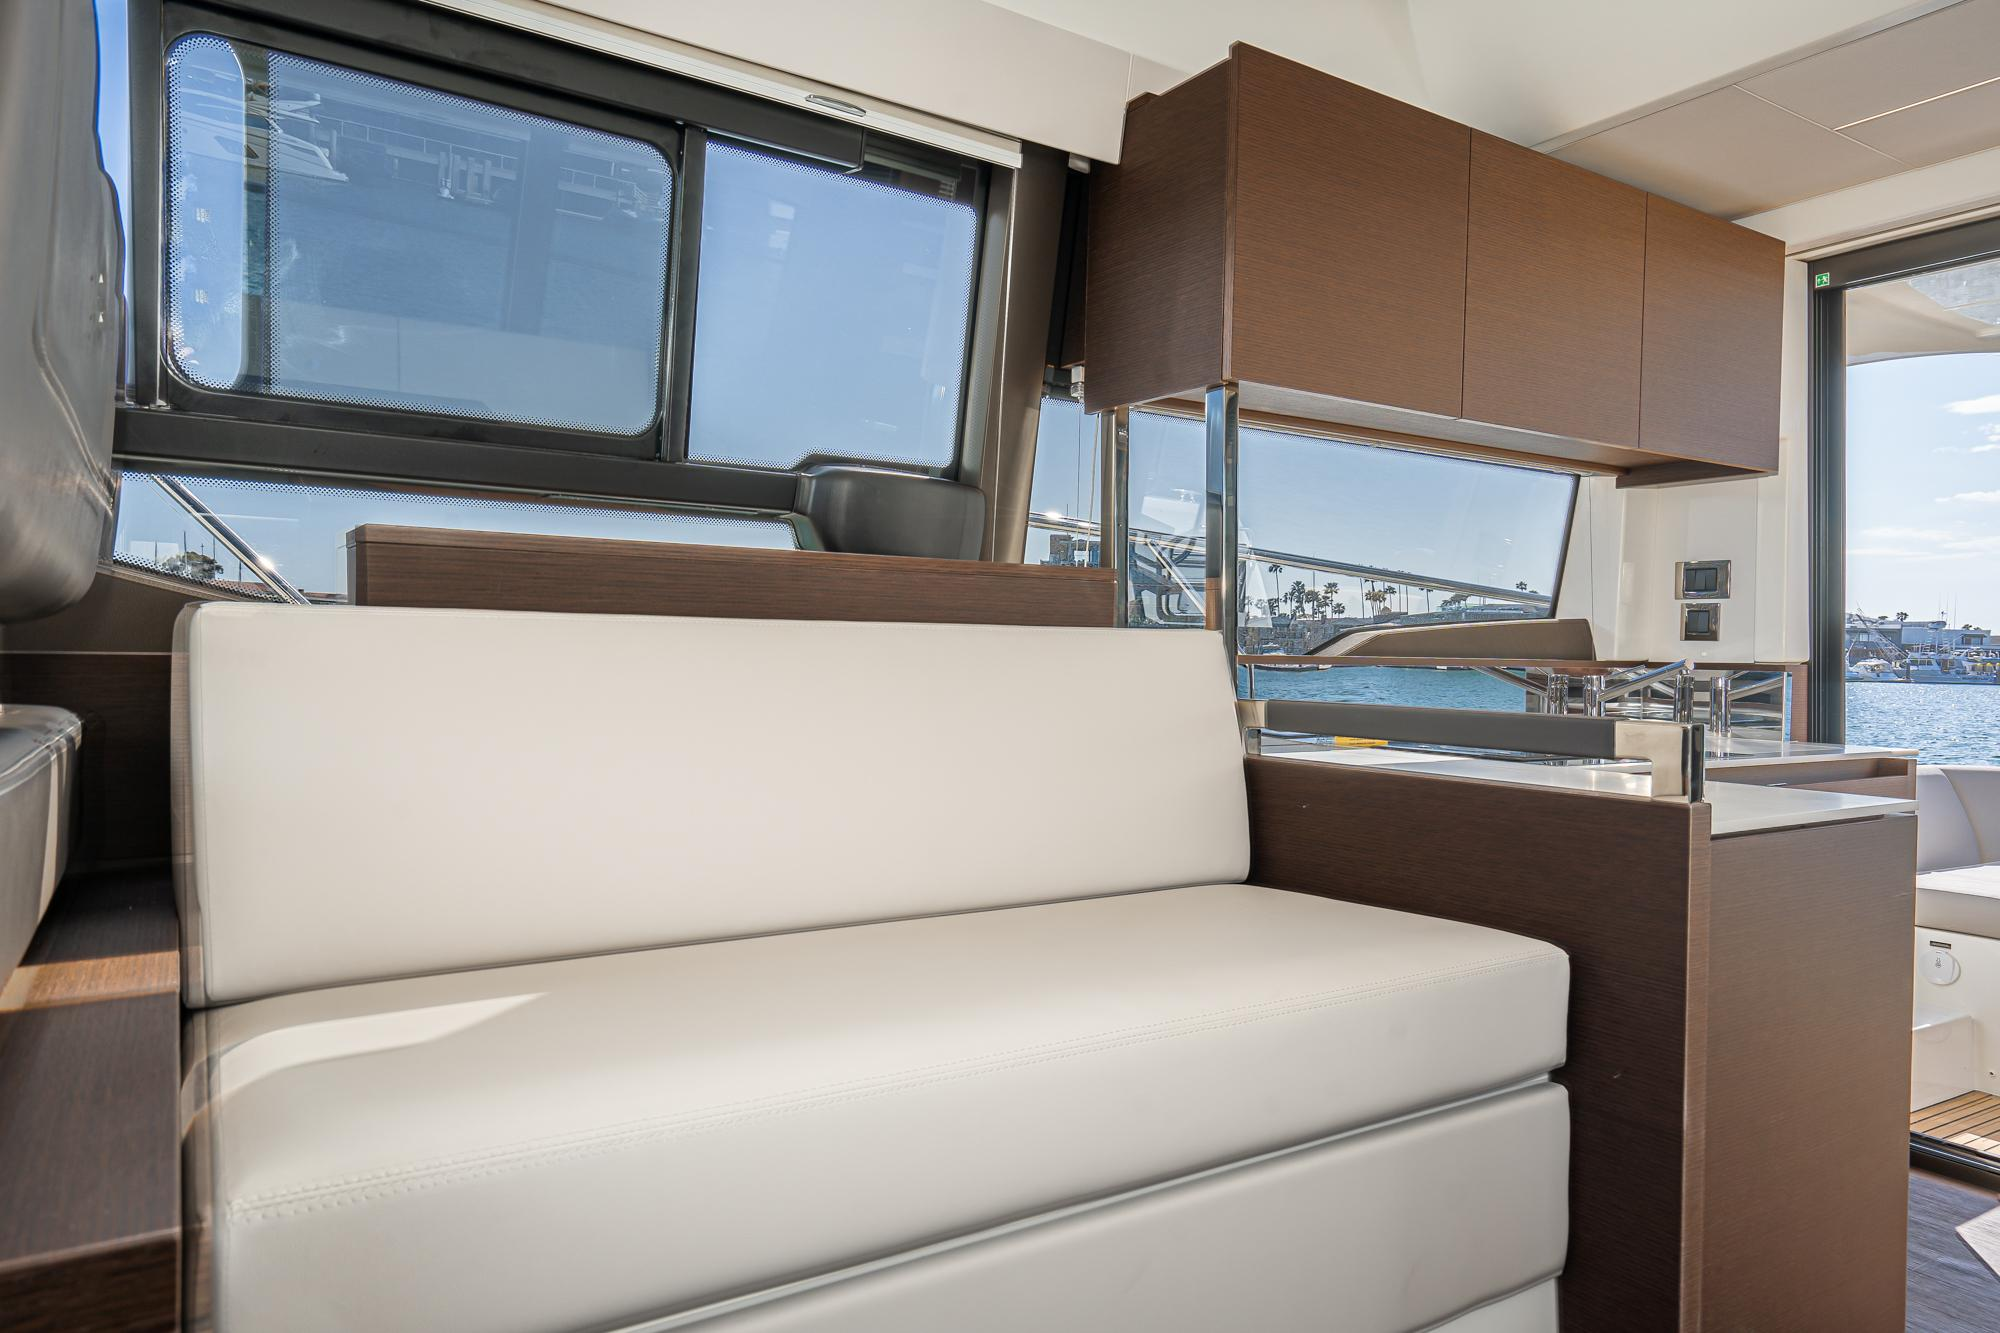 2021 Prestige 460 Fly #PR159A inventory image at Sun Country Coastal in San Diego